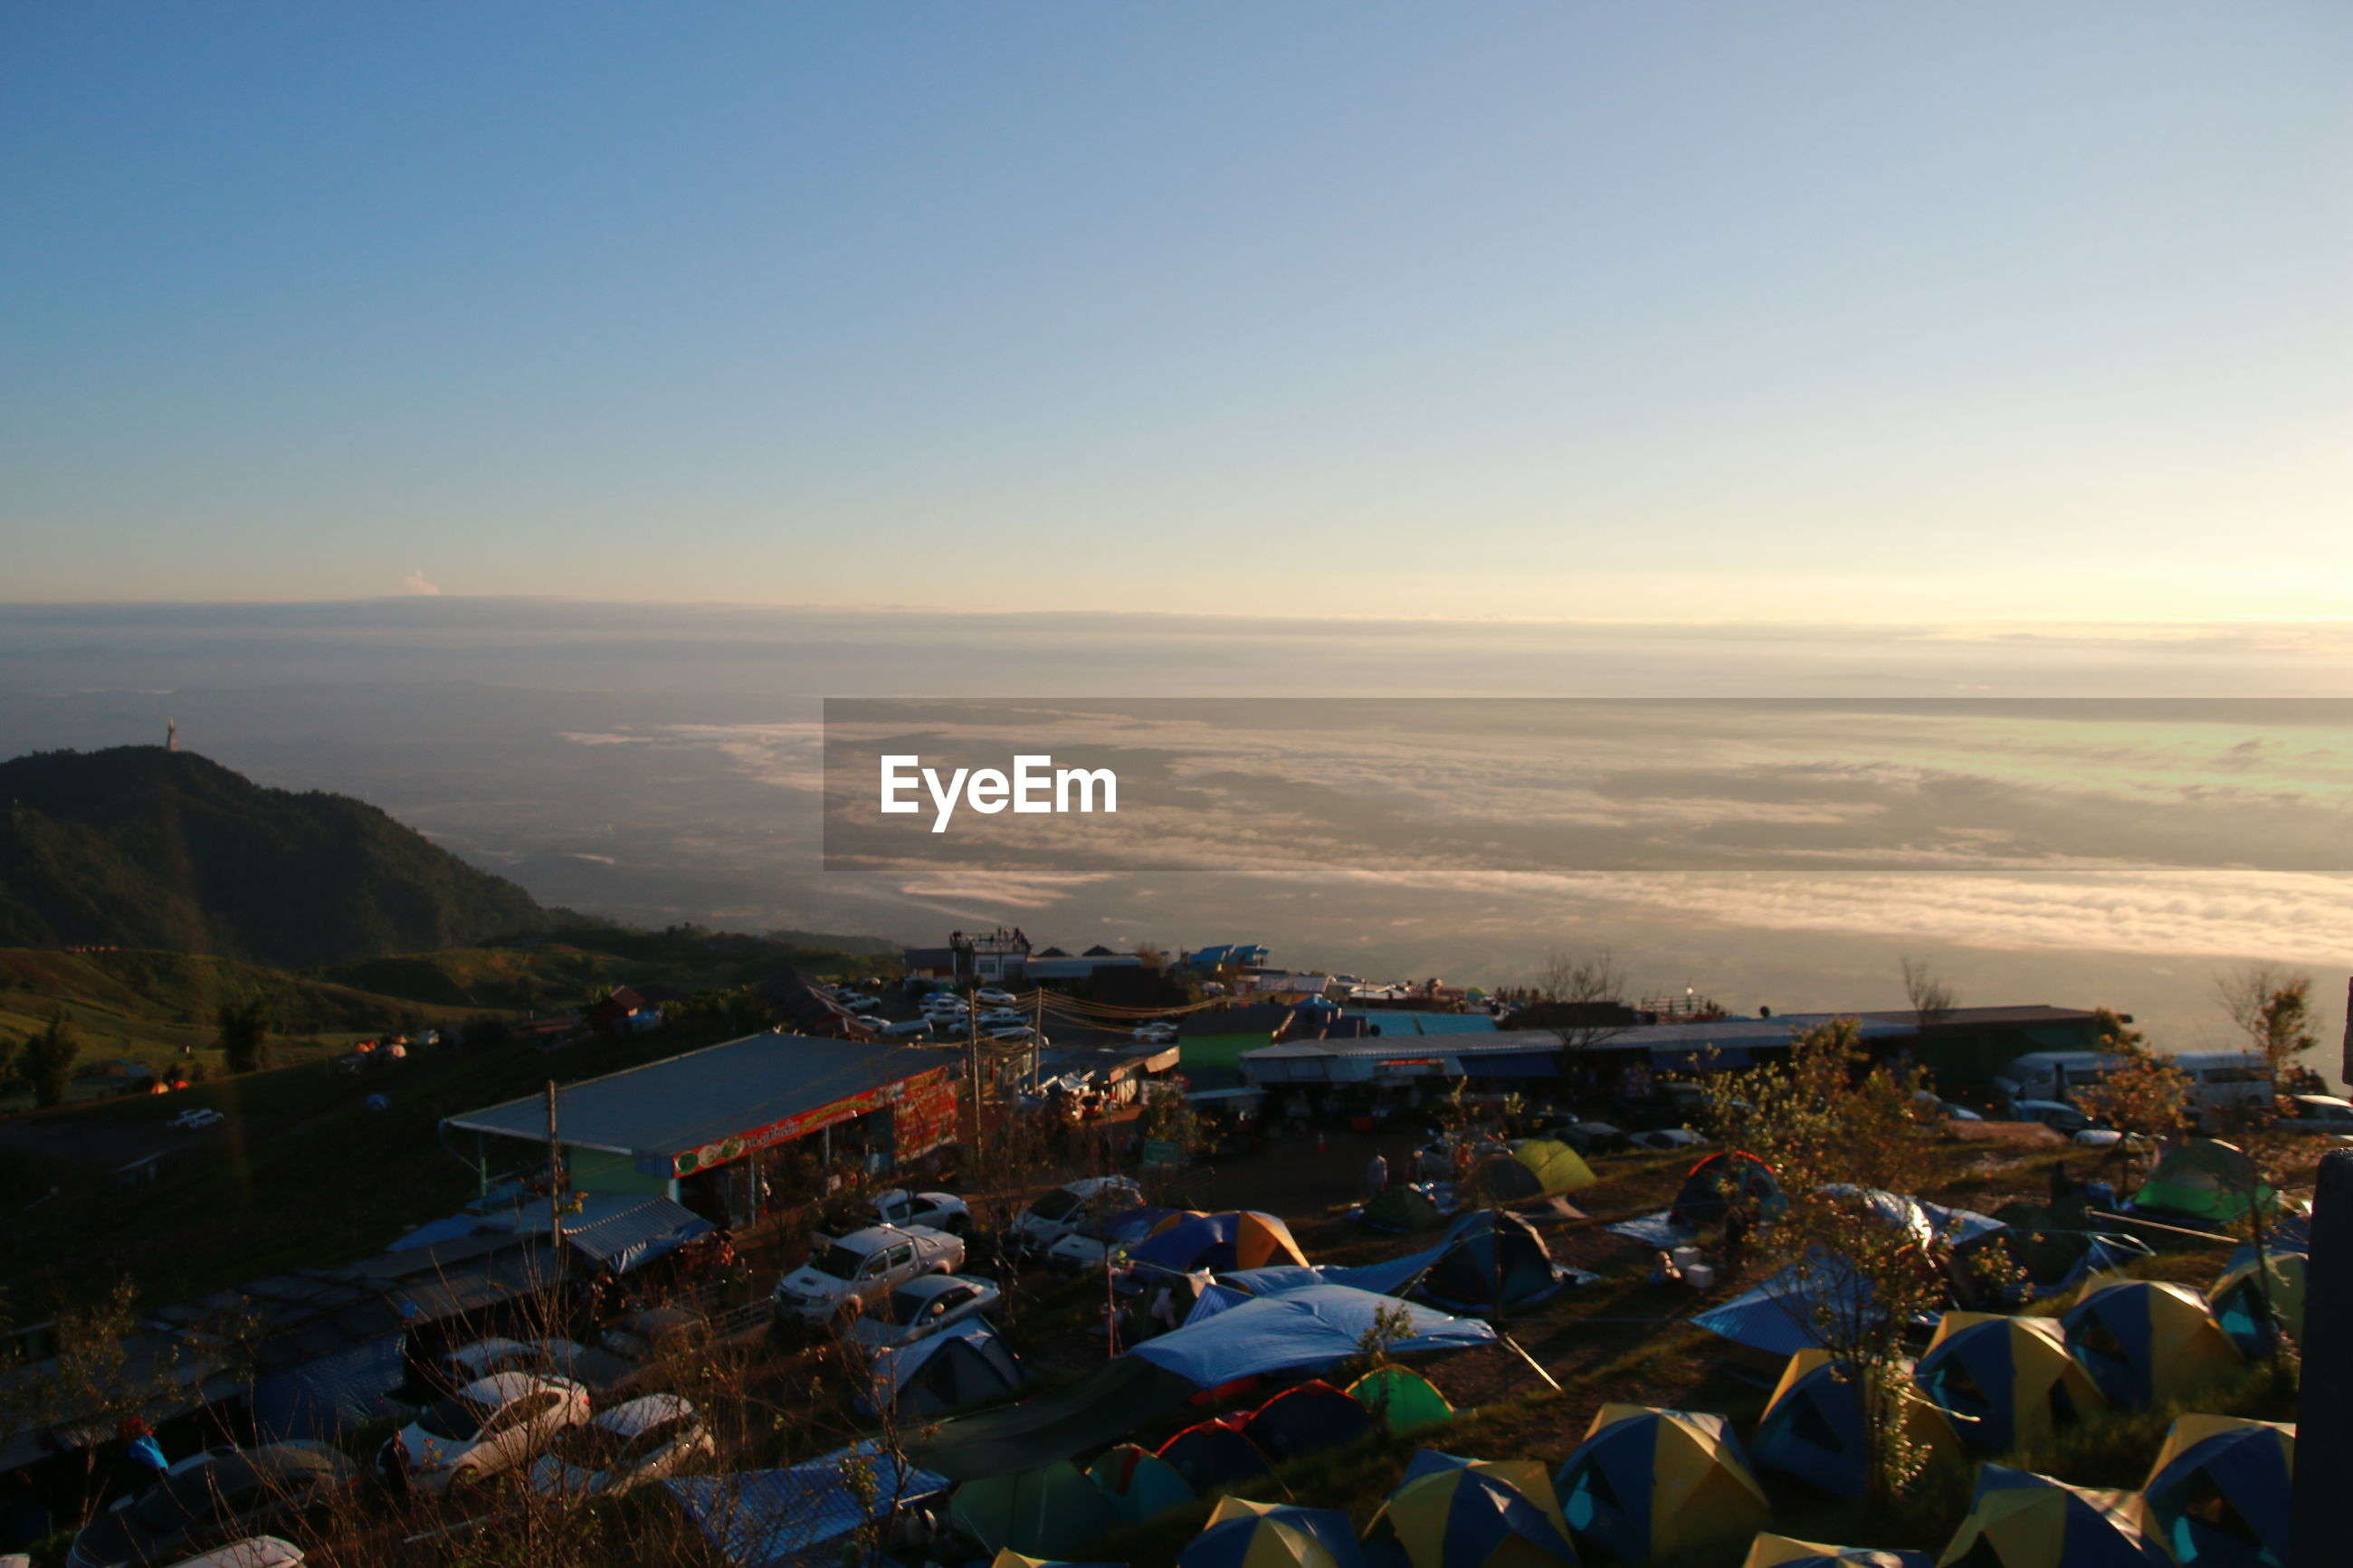 High angle view of tents in town against sky during sunset